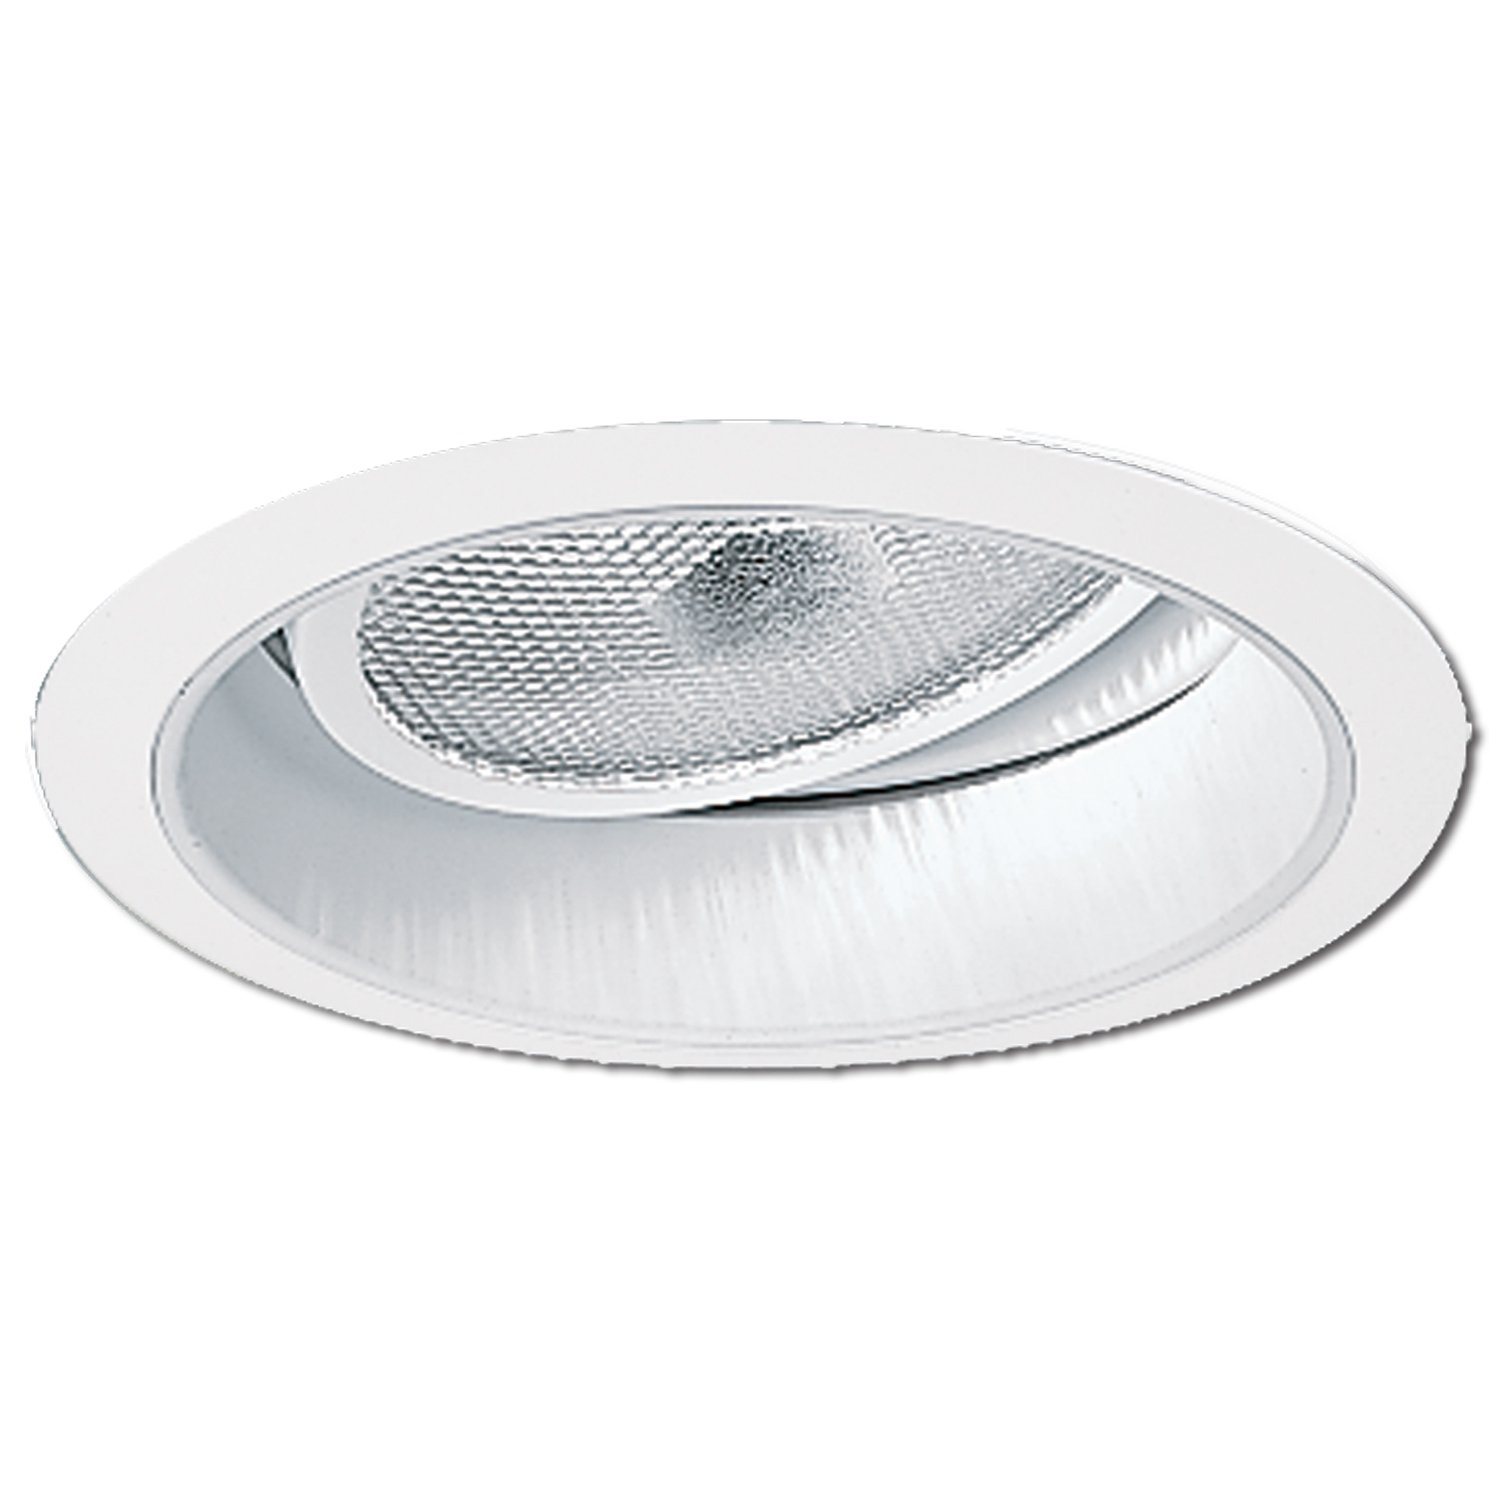 Halo Recessed 478P 6-Inch Adjustable Splay Reflector Trim, White